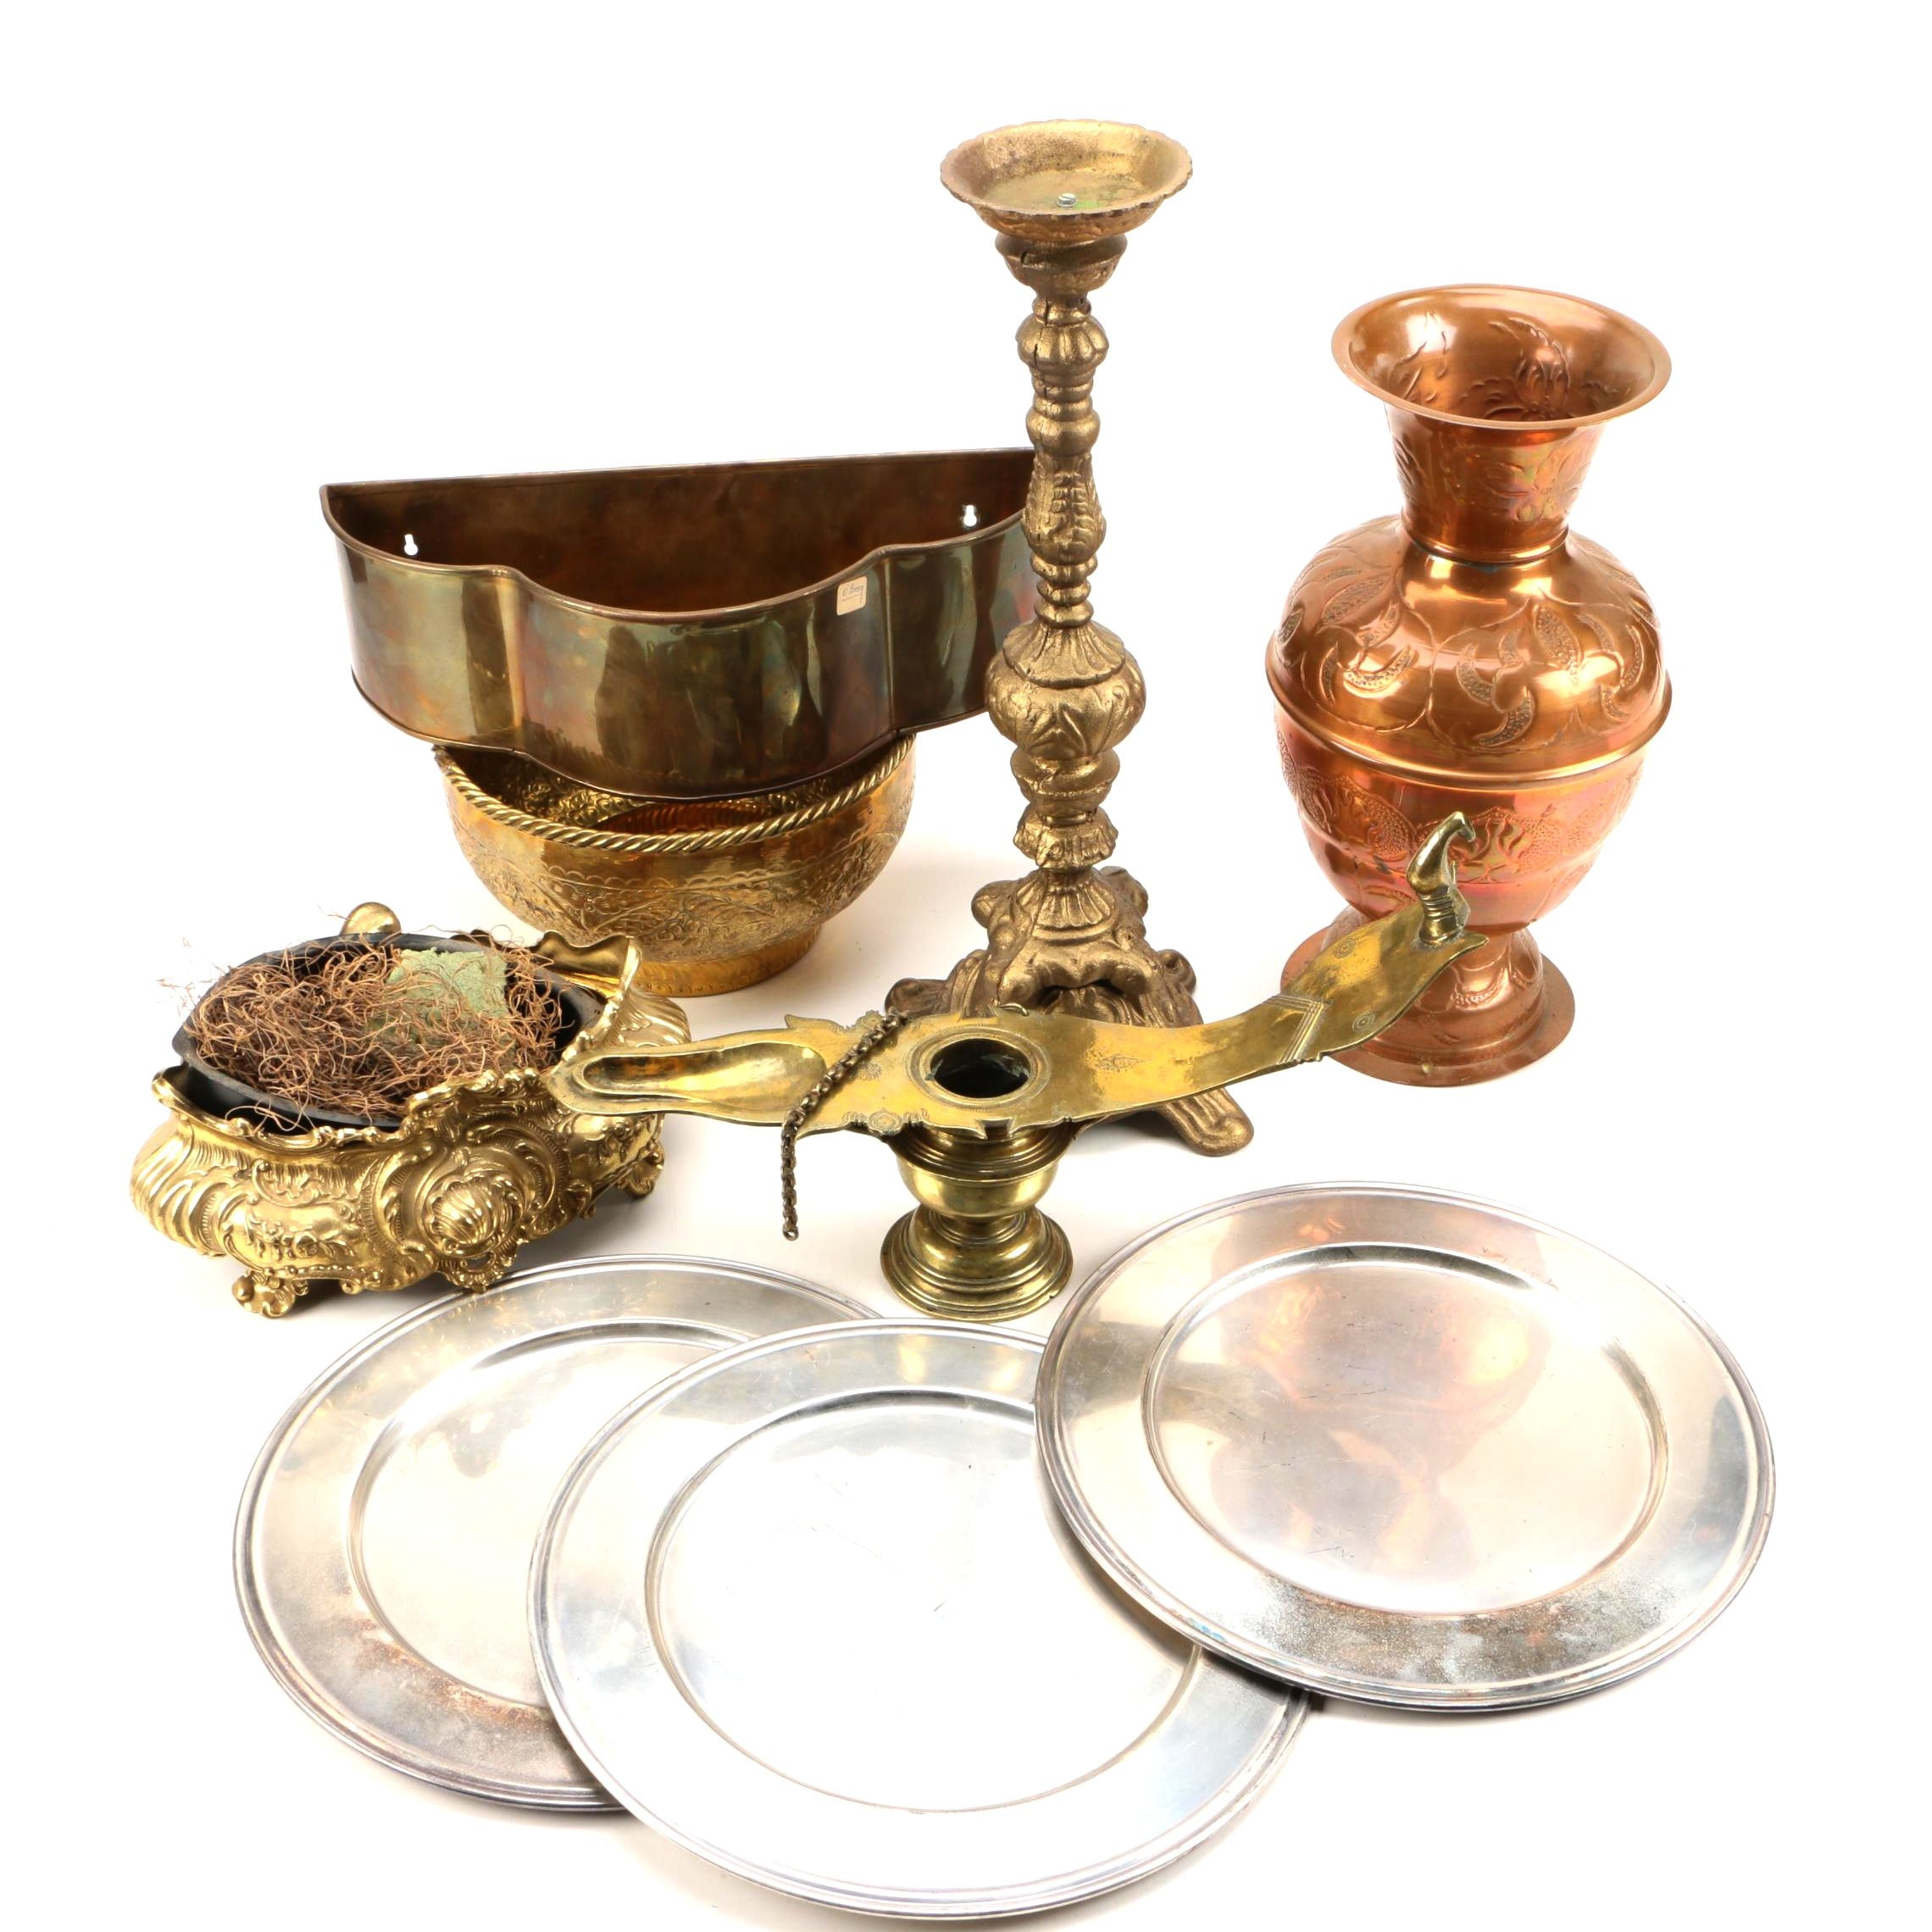 Assortment of Metal Servingware and Décor